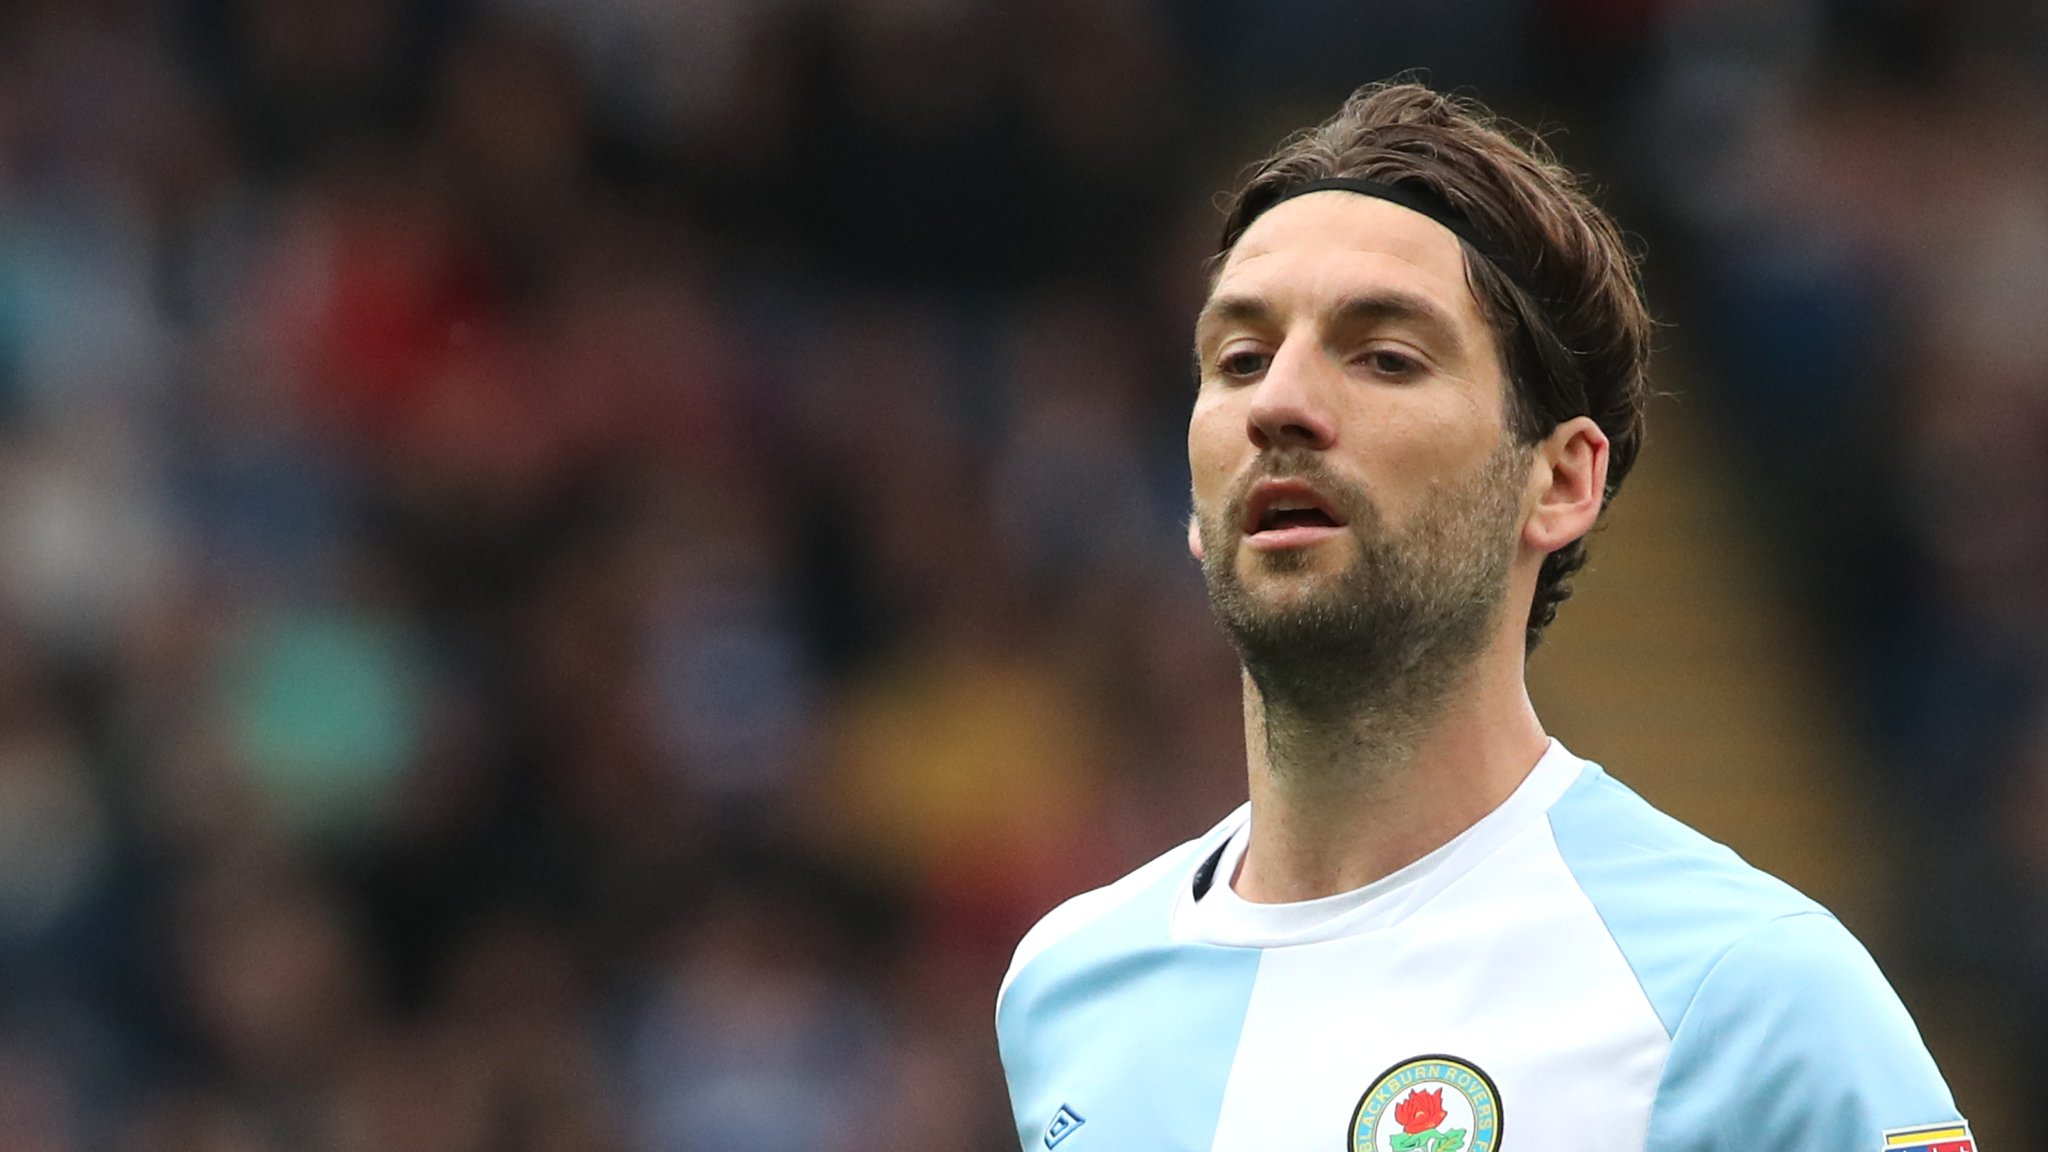 Charlie Mulgrew: Blackburn Rovers captain signs new deal running until summer 2021